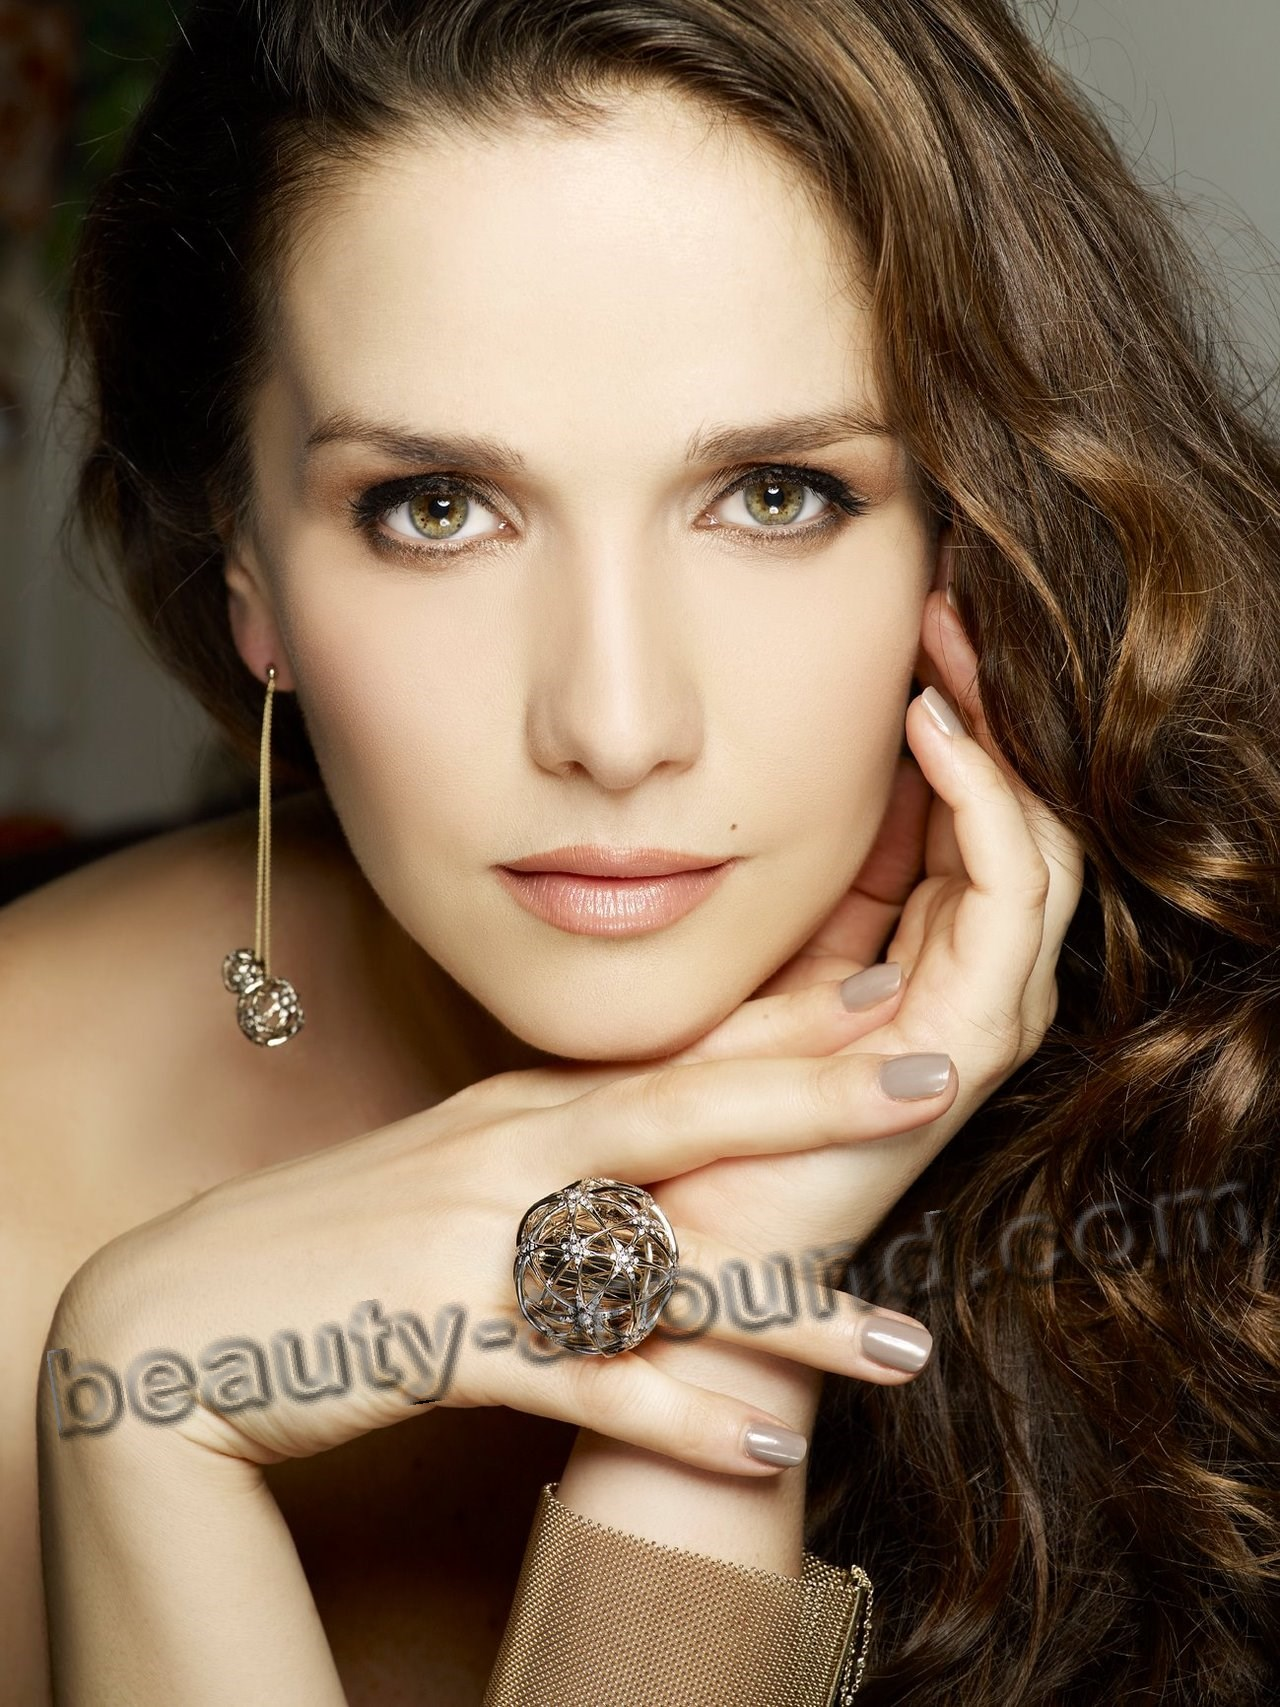 Natalia Oreiro photo